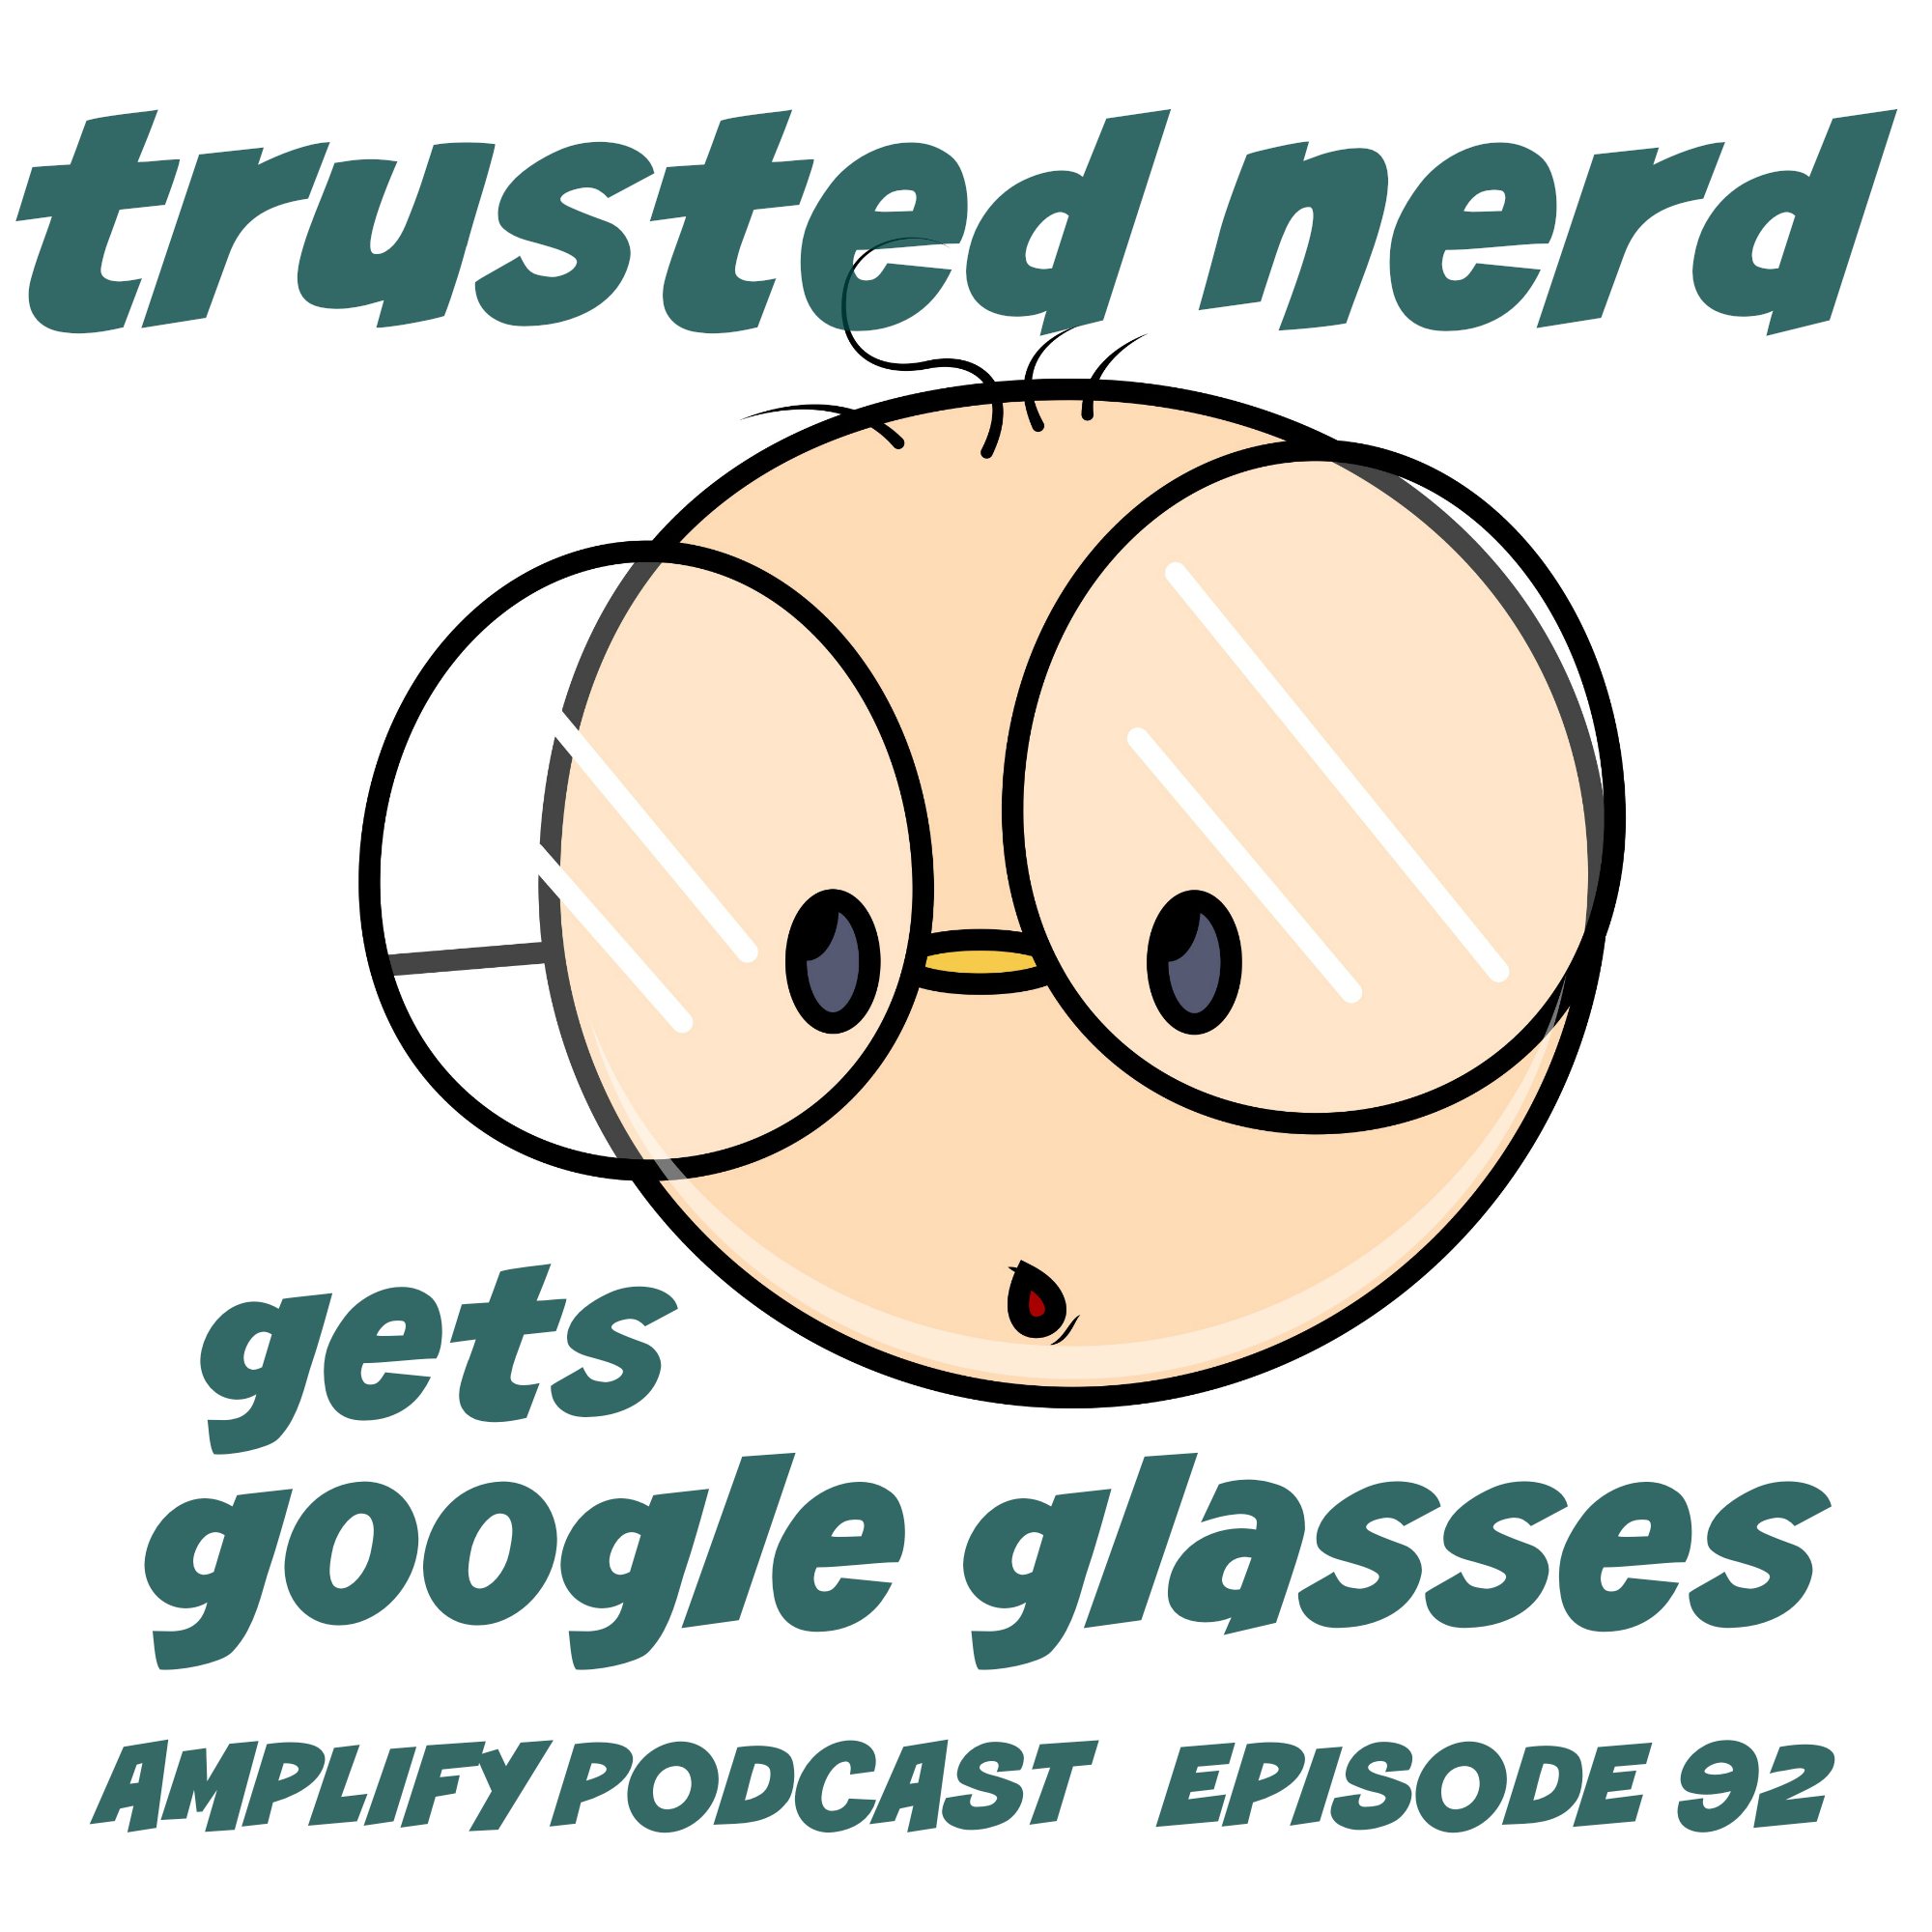 TrustedNerd gets Google Glass